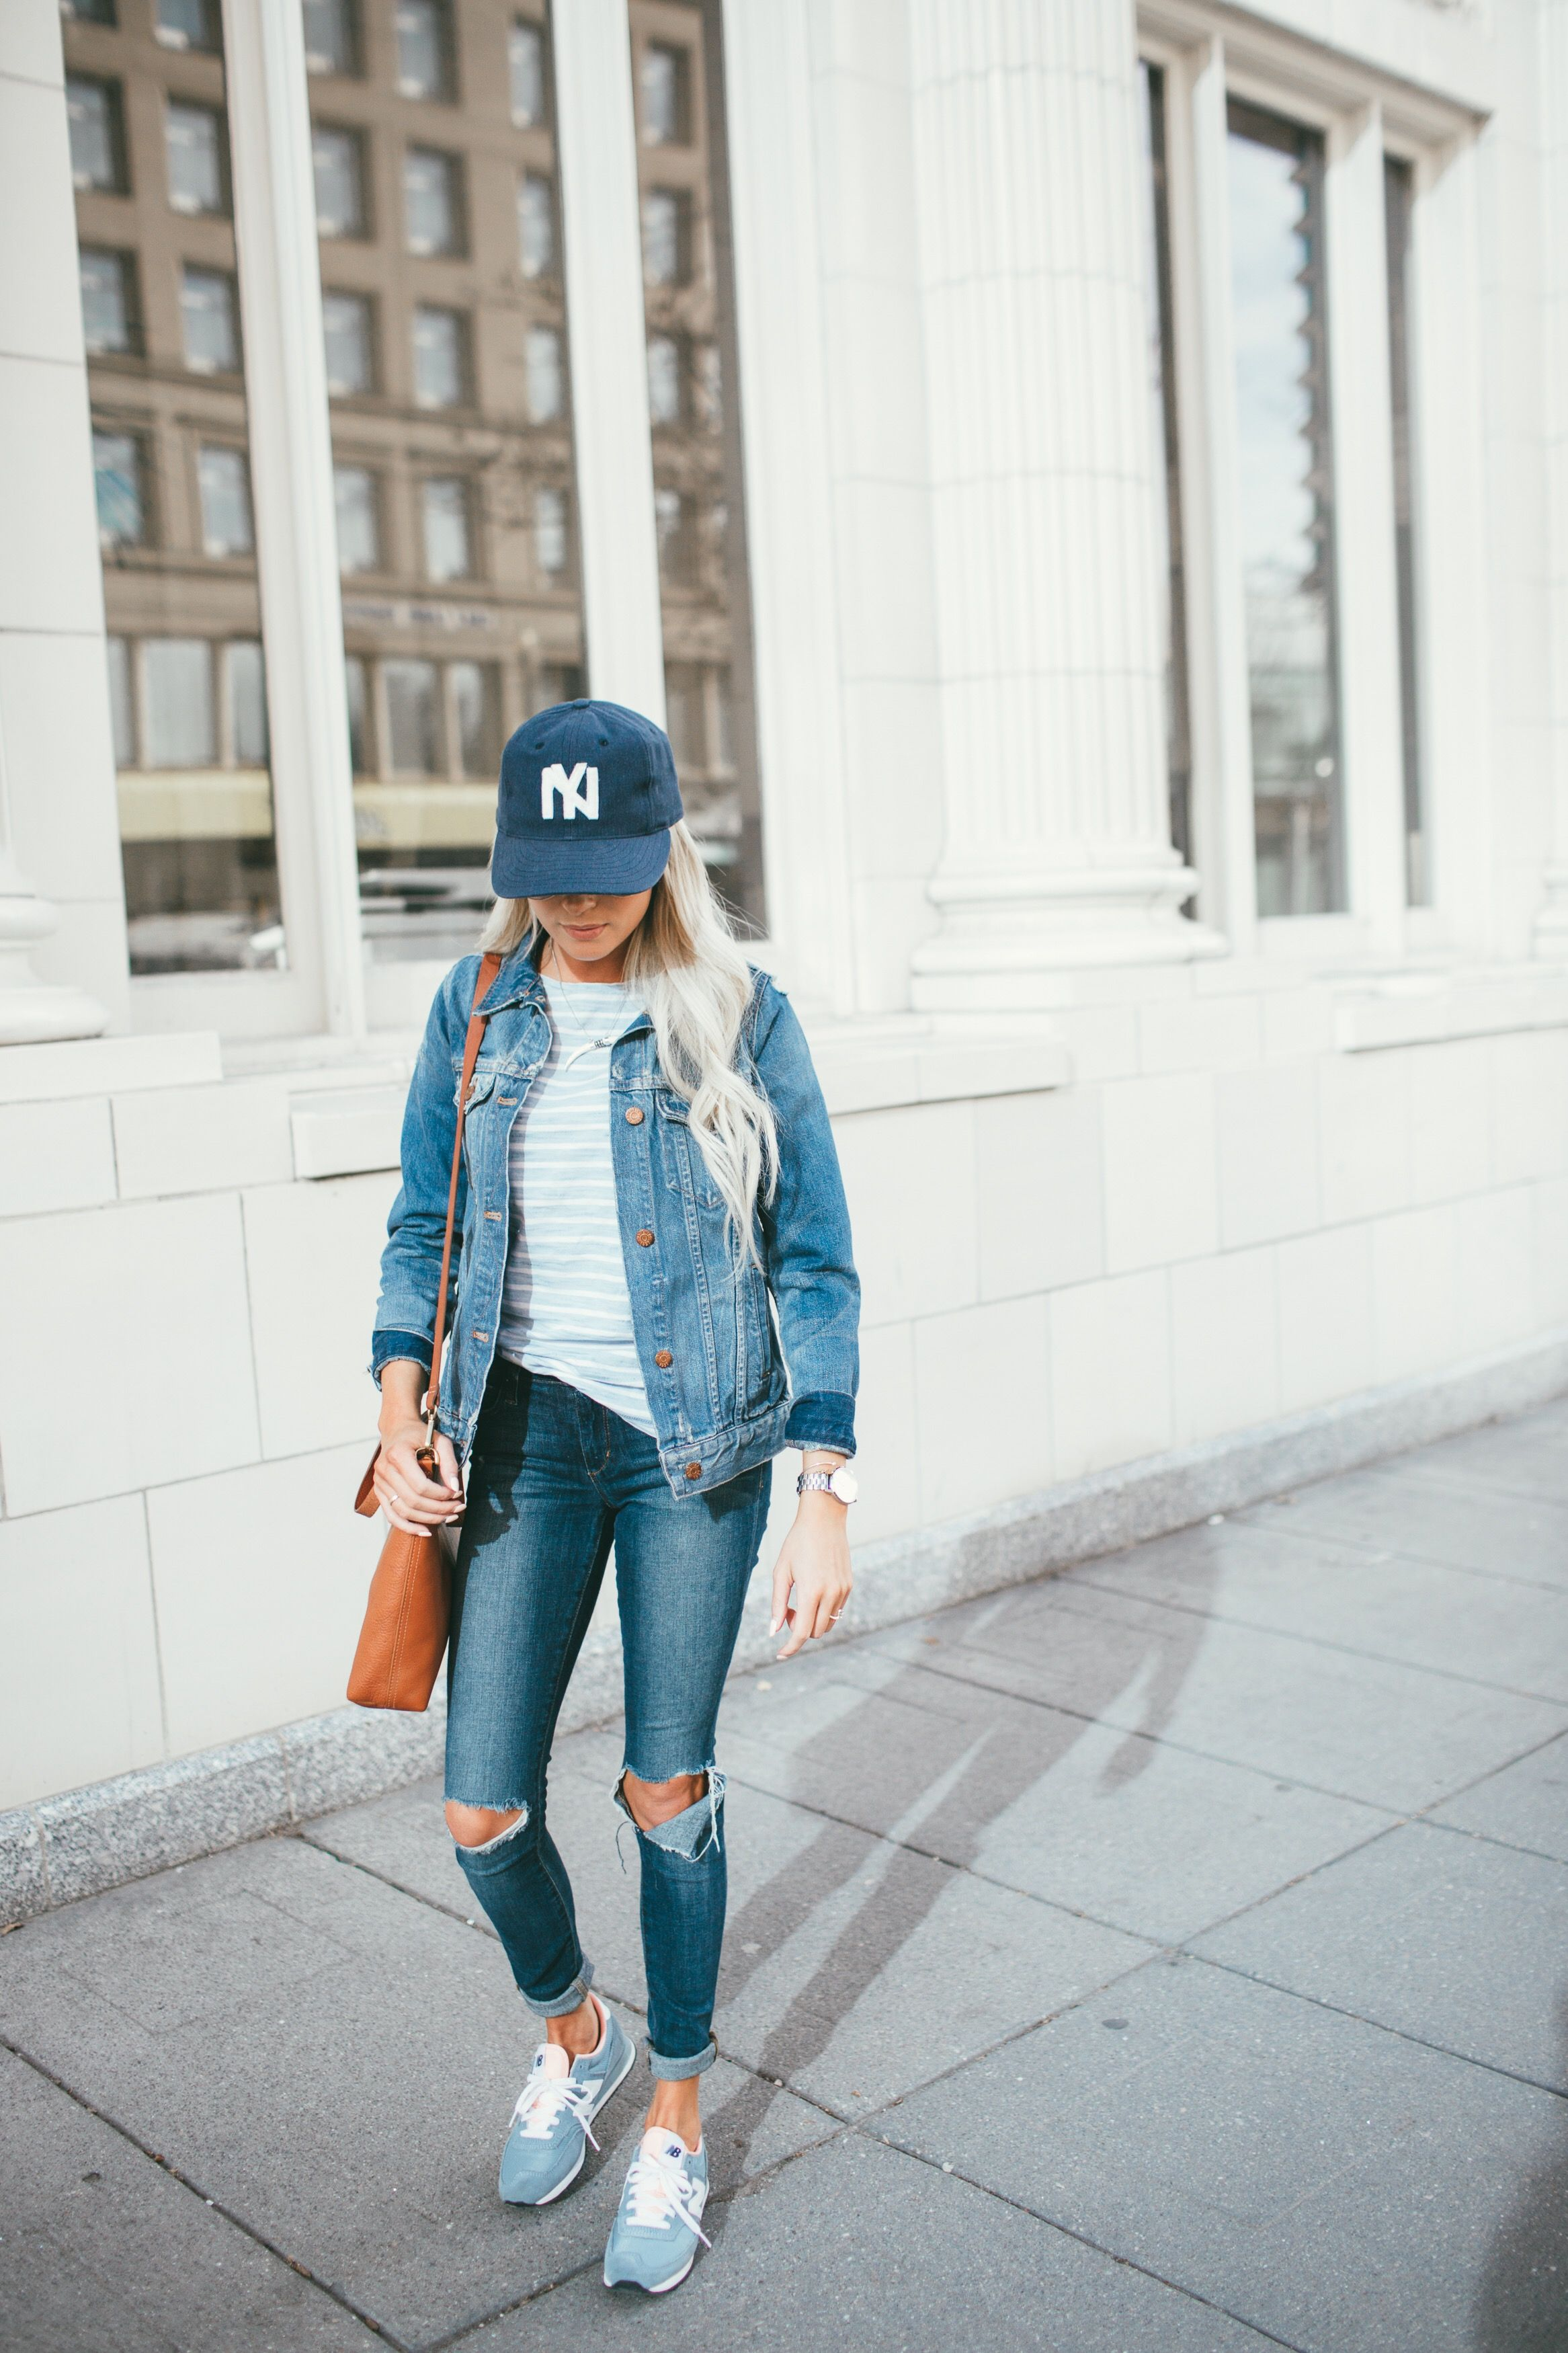 Cute casual weekend outfit - Yankee hat, light blue ...